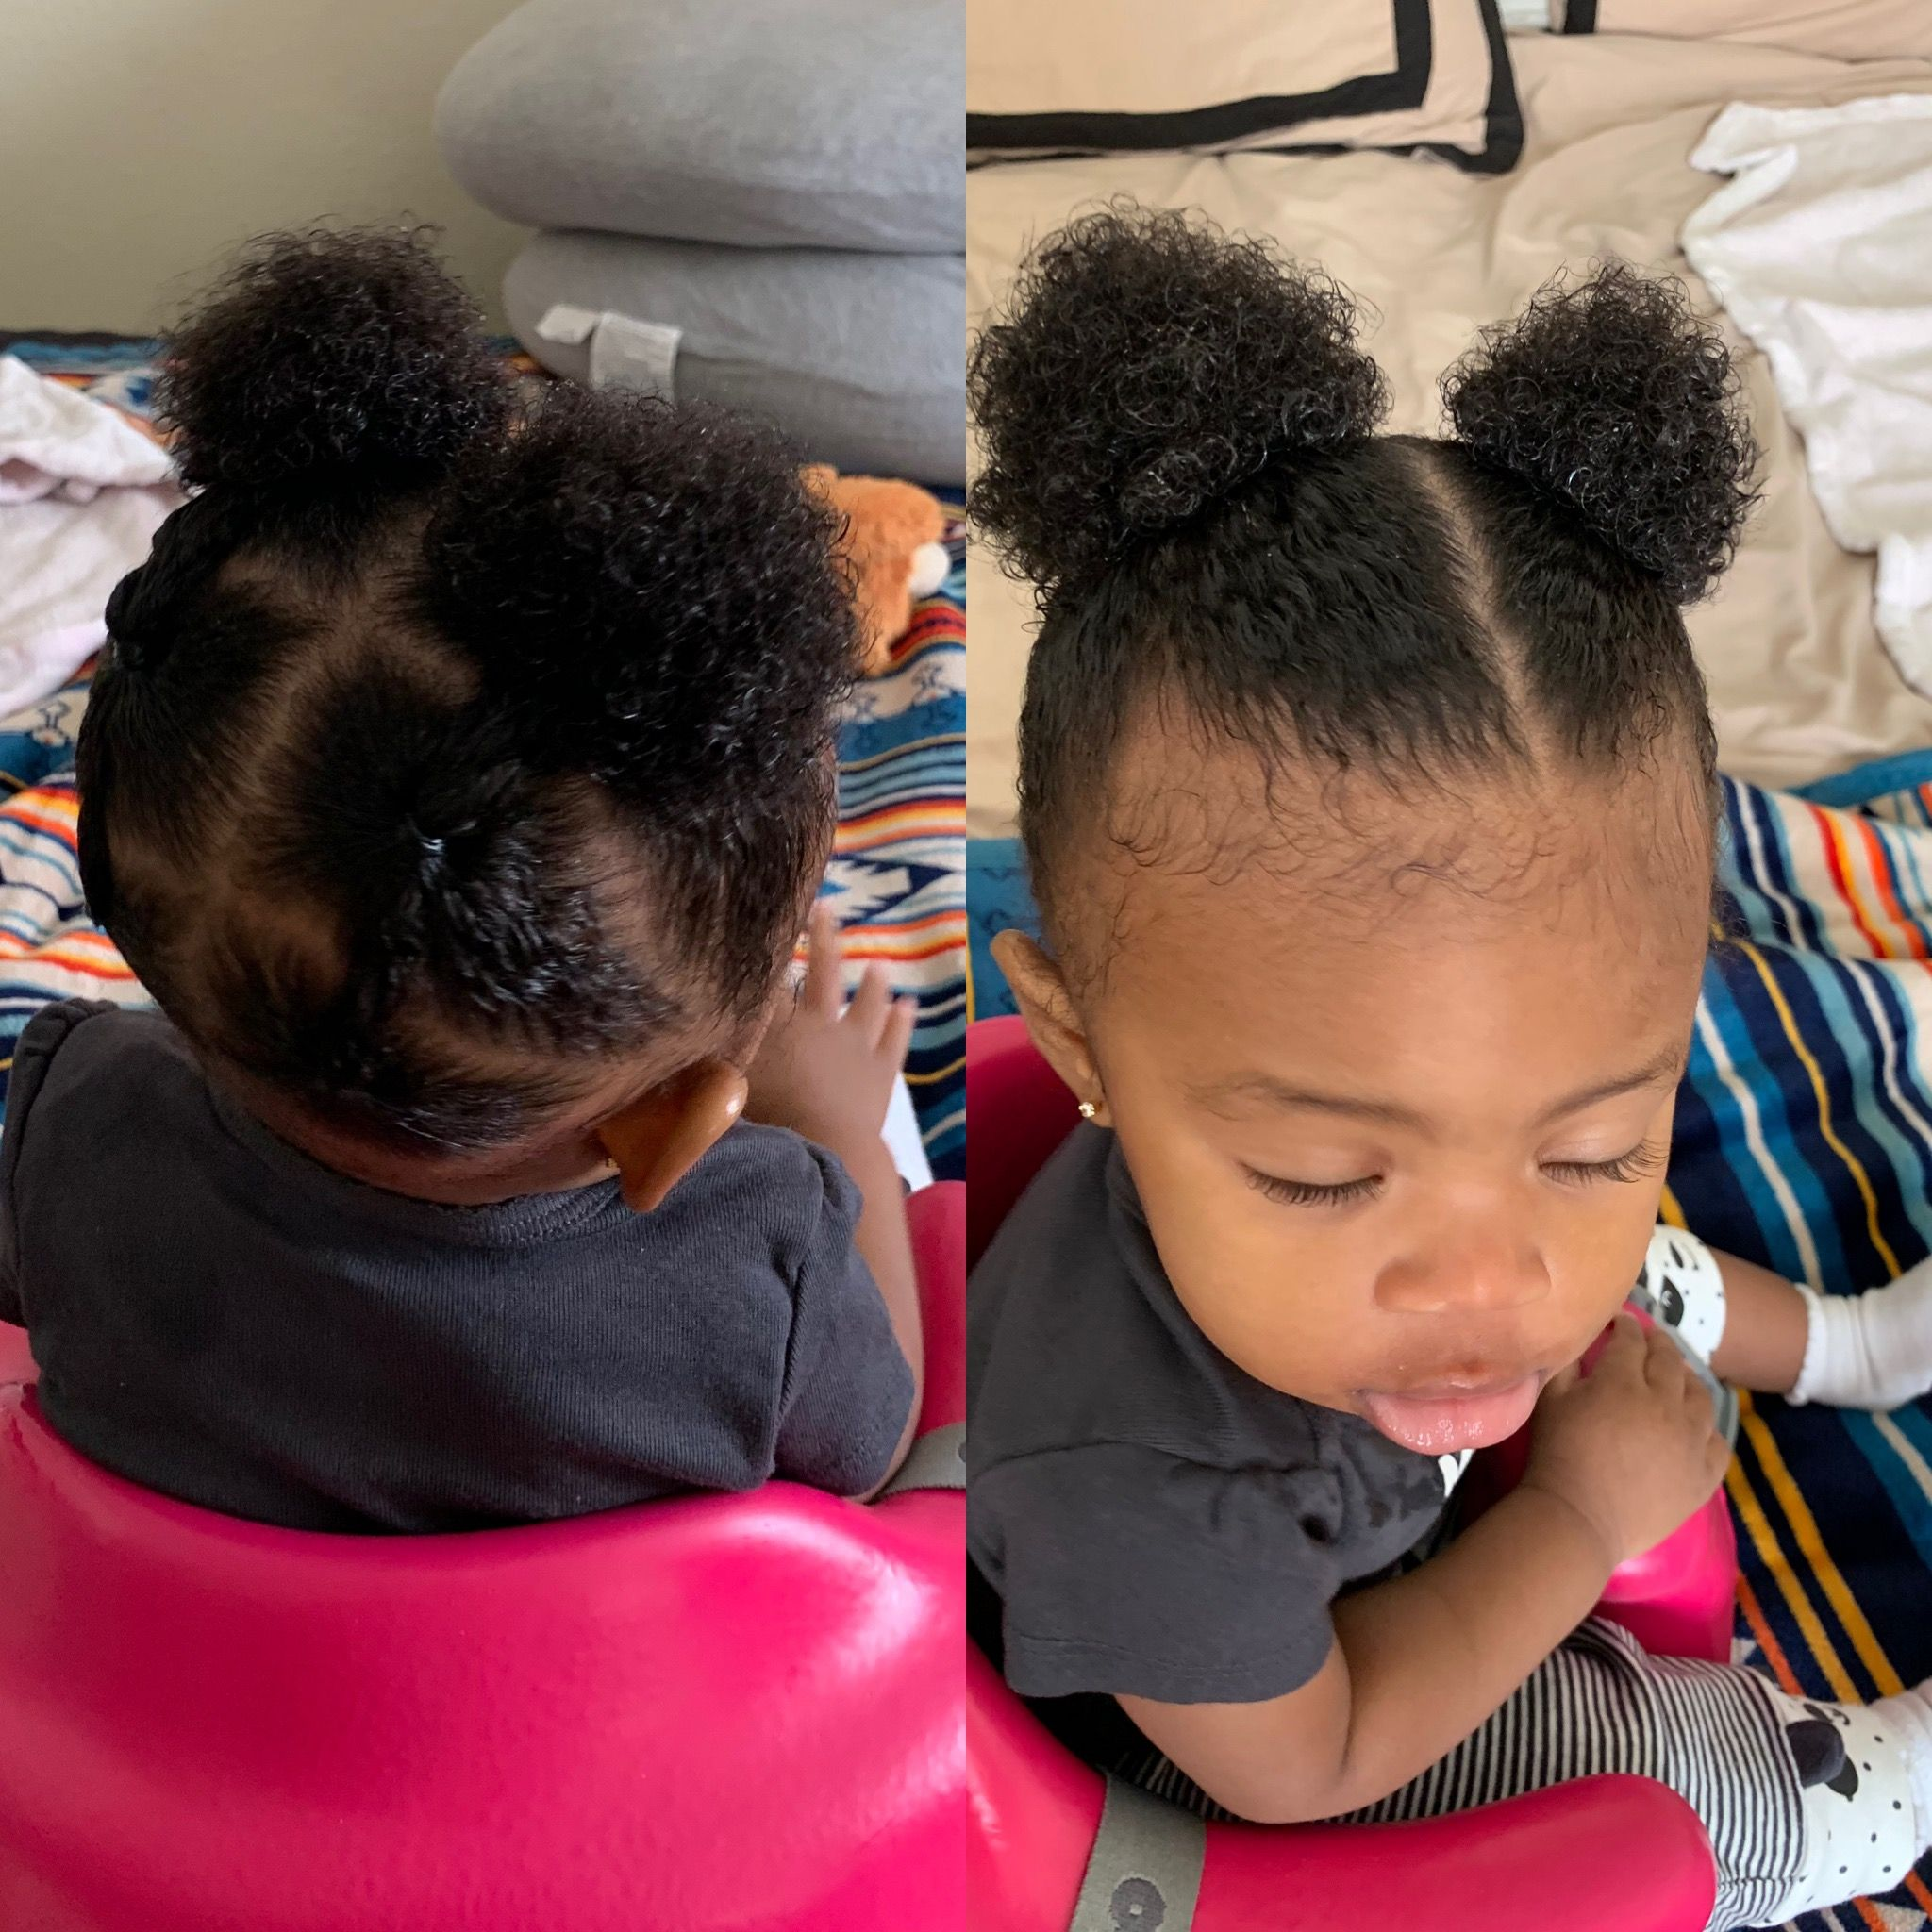 Connected 2 Ponytails Baby Girl Hairstyles Baby Hairstyles Black Baby Hairstyles